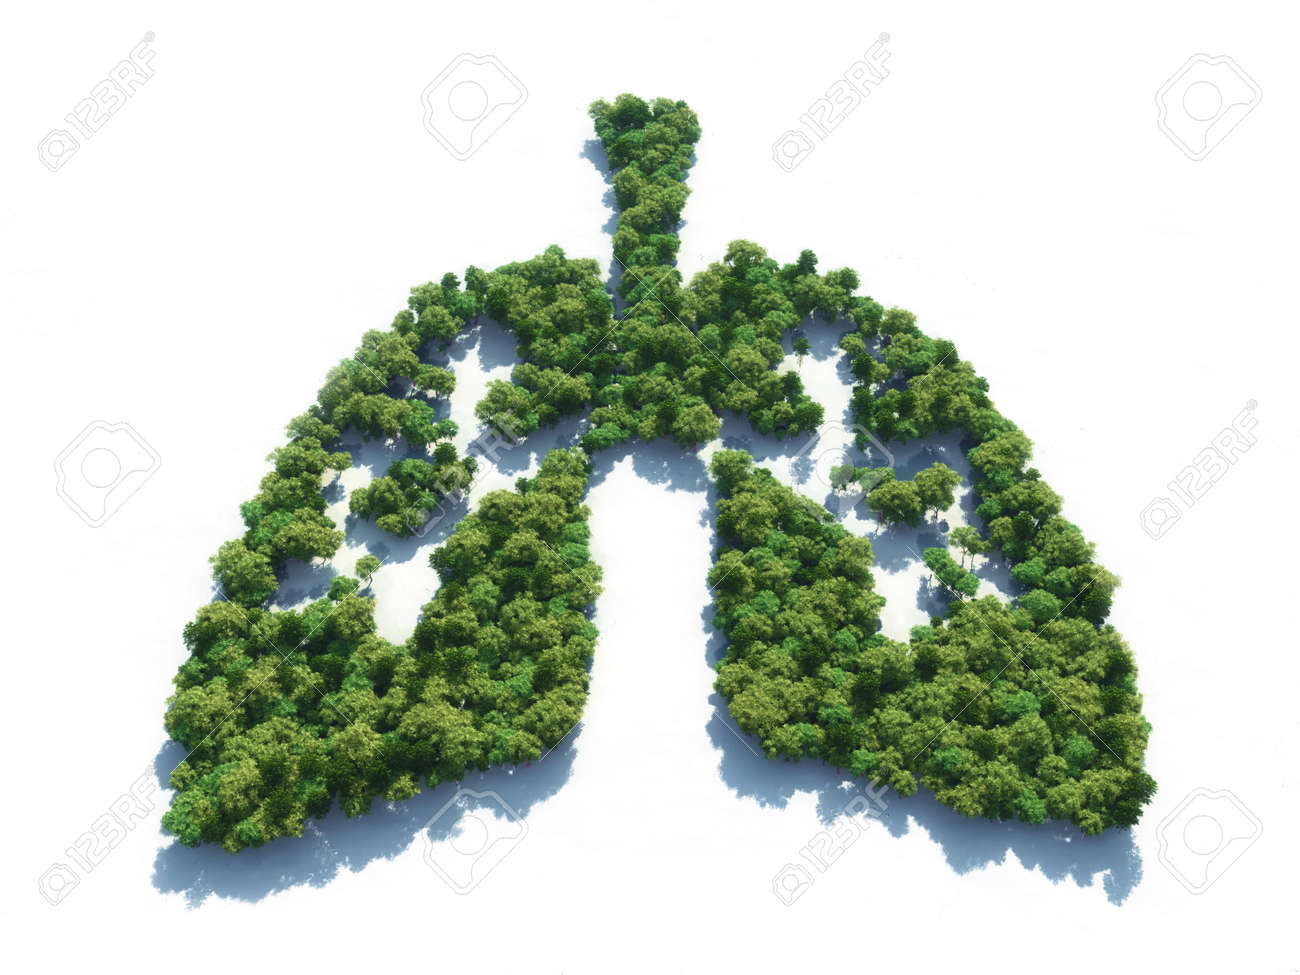 Conceptual image of a forest in shape of lungs - 3d illustration - 104879226